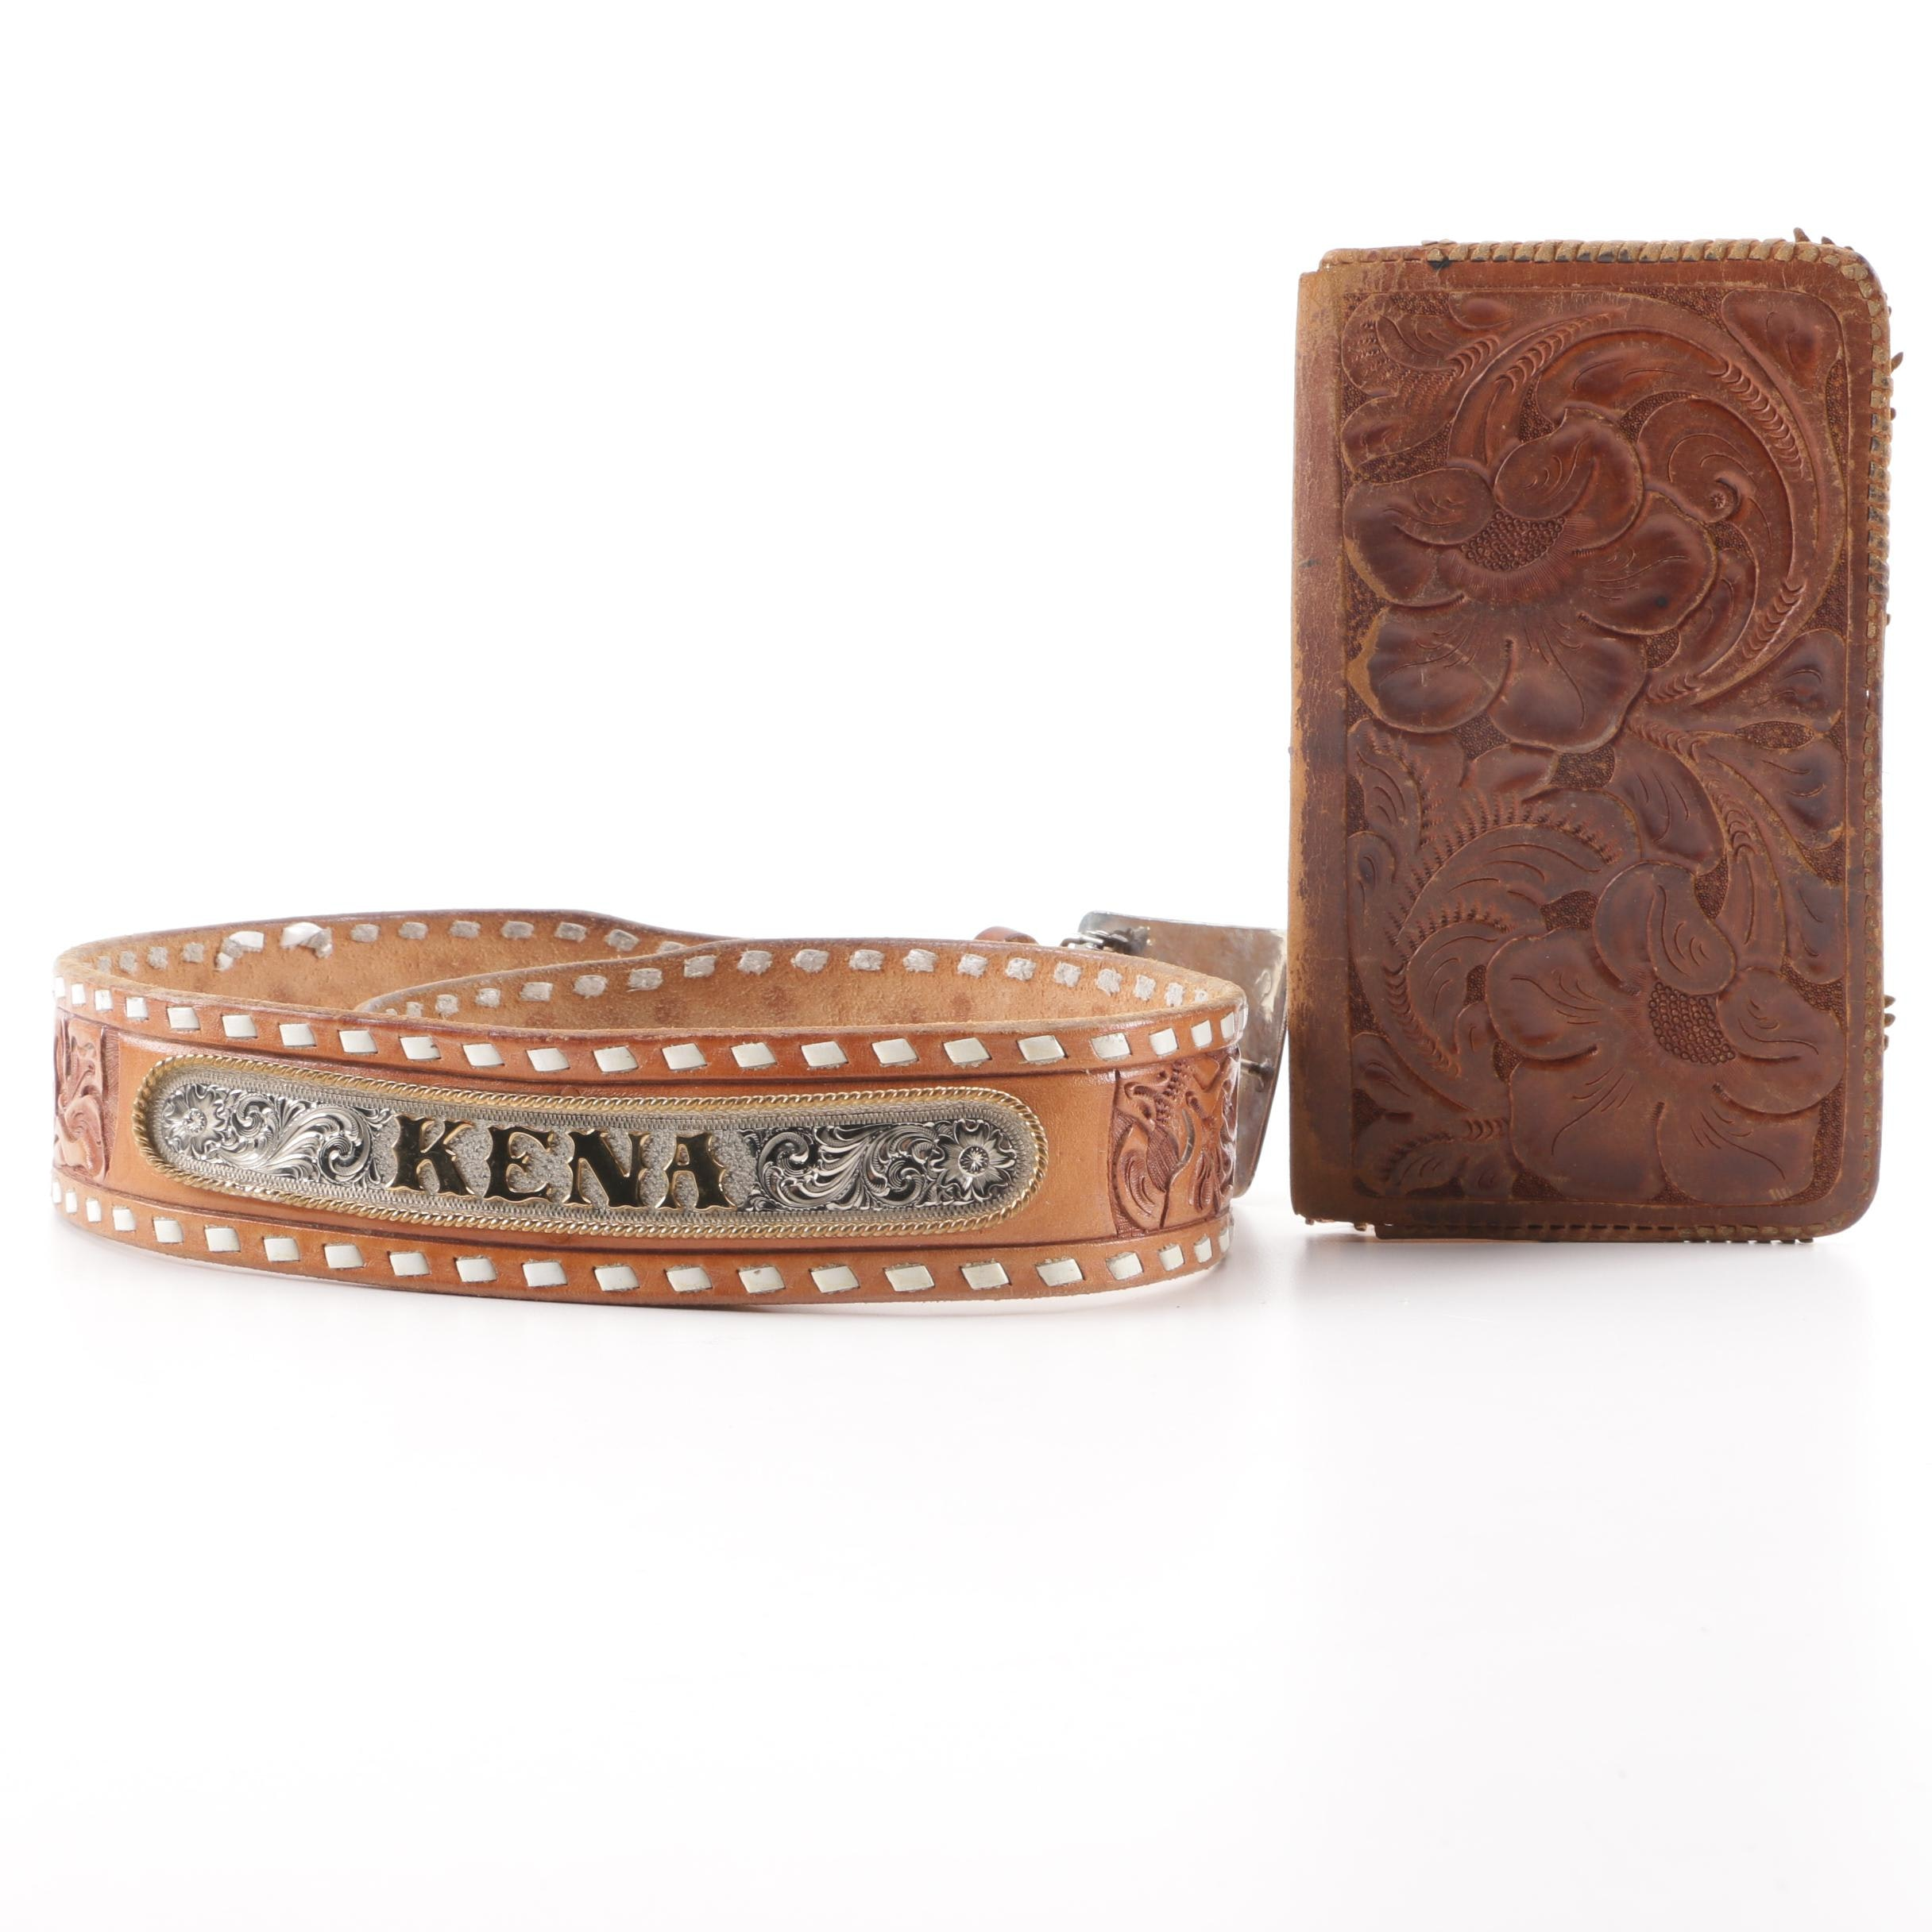 Tooled Leather Belt and Wallet